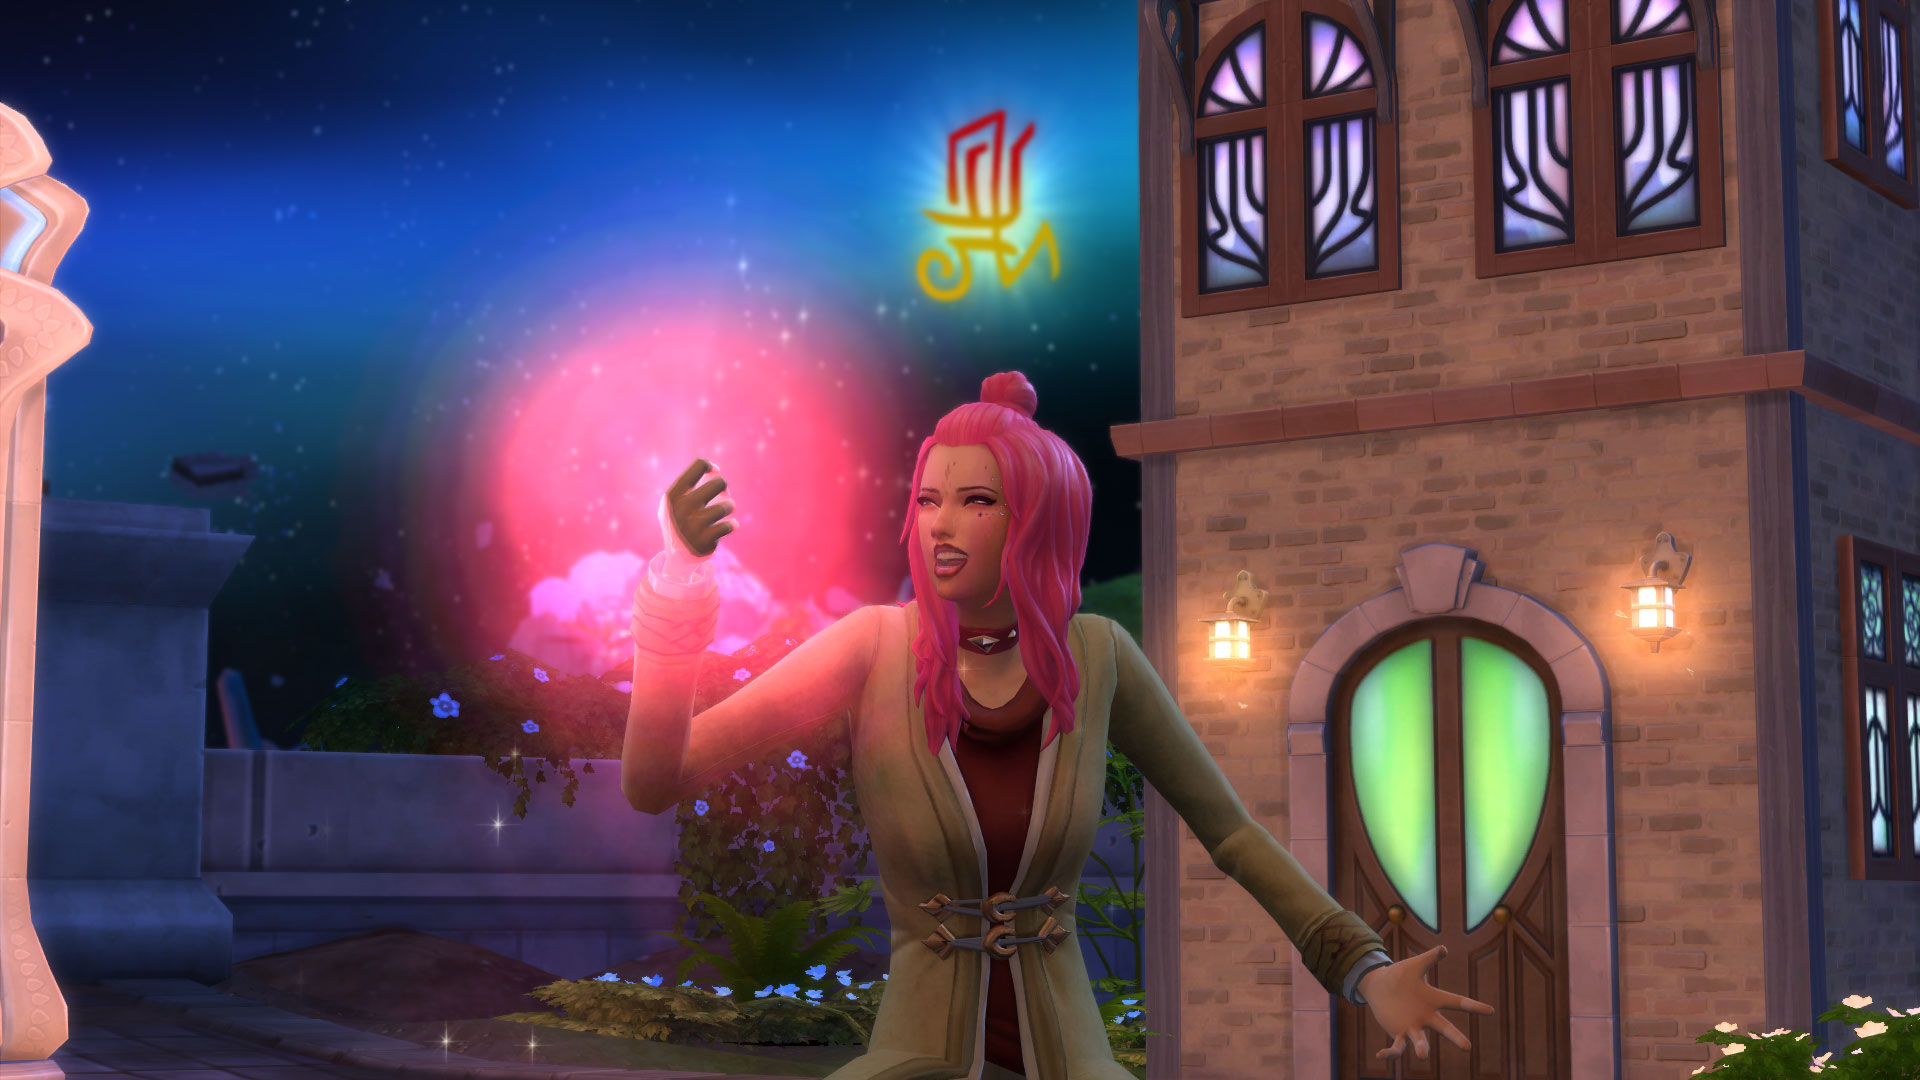 The Sims 4 Realm of Magic Cheats - Sims Online